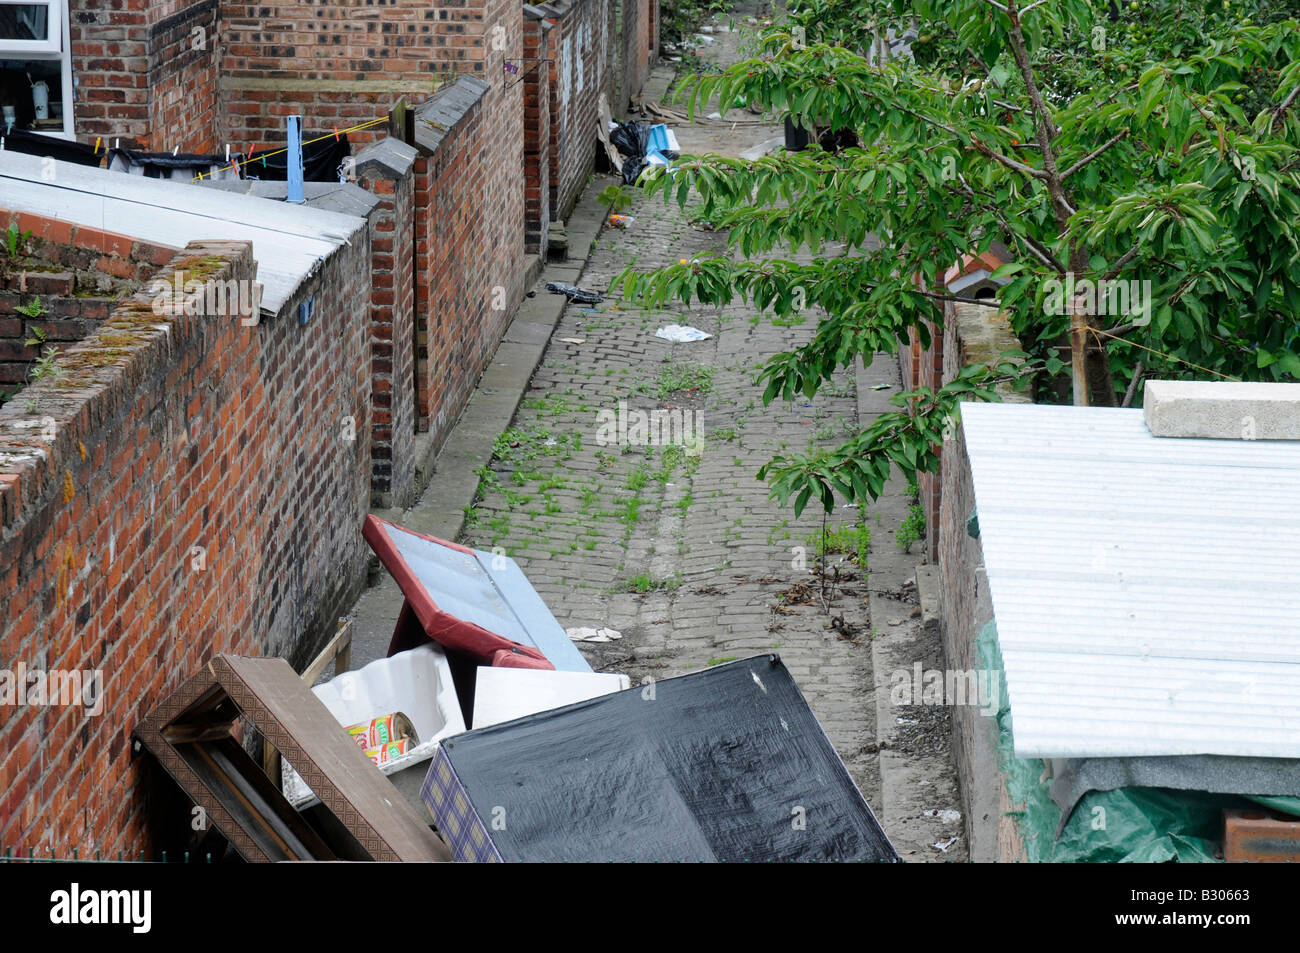 Urban mess, rubbish dumped in a terrace back ally, Manchester, Northern England - Stock Image